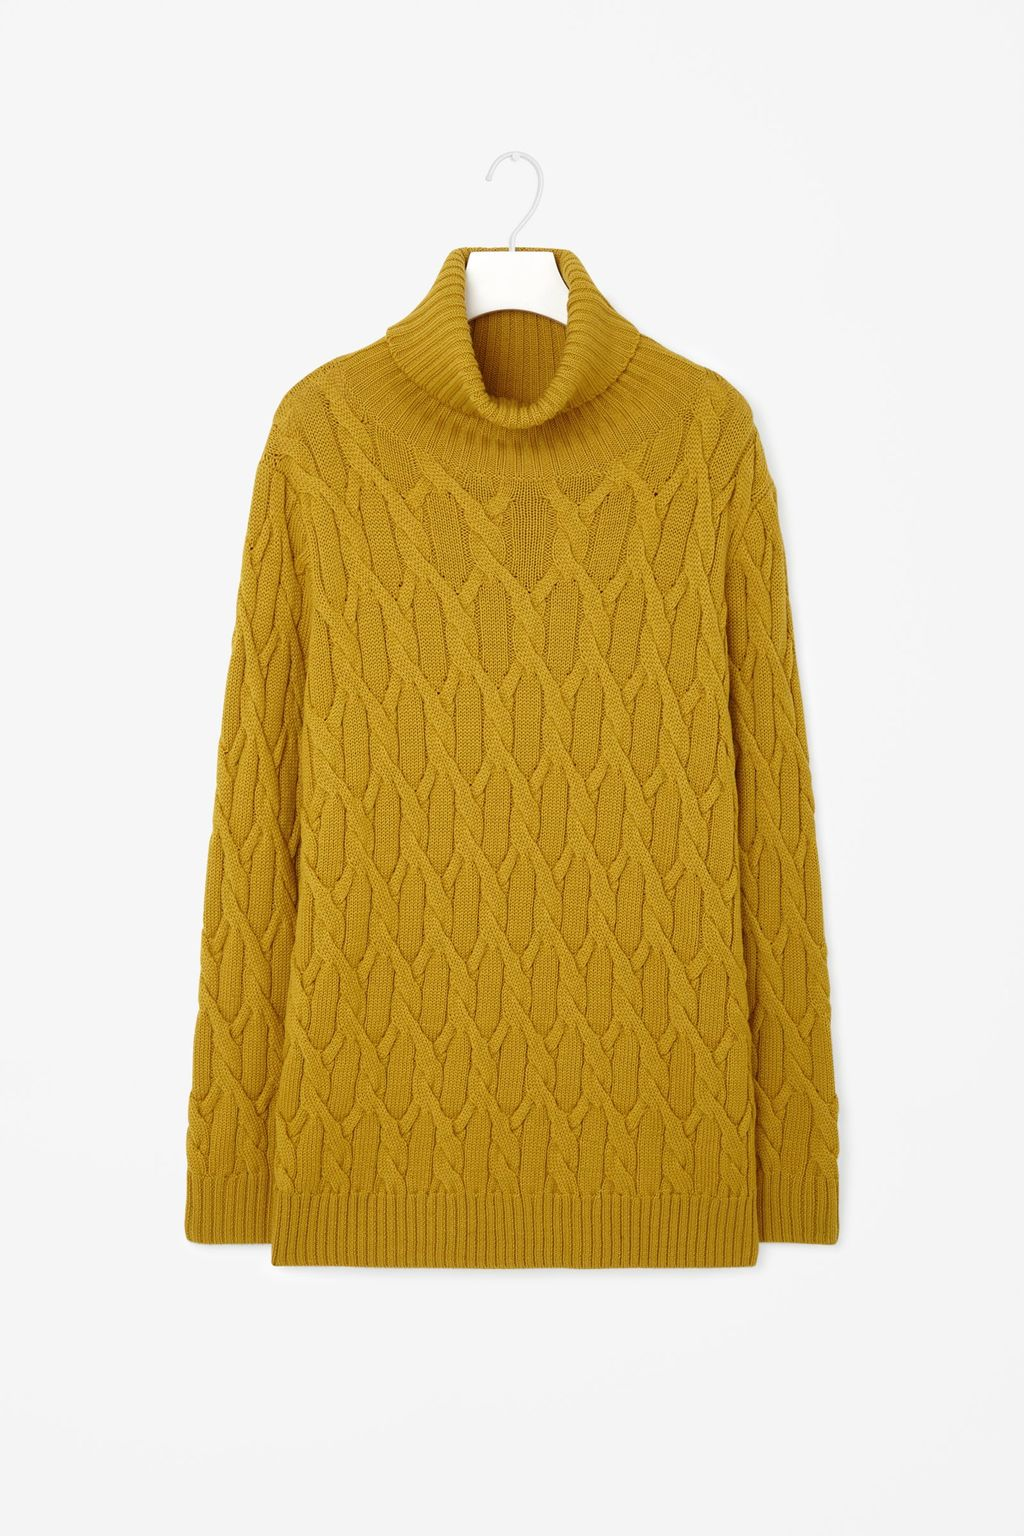 Roll Neck Cable Jumper - neckline: wide roll/funnel neck; length: below the bottom; style: standard; pattern: cable knit; predominant colour: mustard; occasions: casual, creative work; fibres: wool - 100%; fit: loose; sleeve length: long sleeve; sleeve style: standard; texture group: knits/crochet; pattern type: knitted - other; pattern size: standard; season: a/w 2015